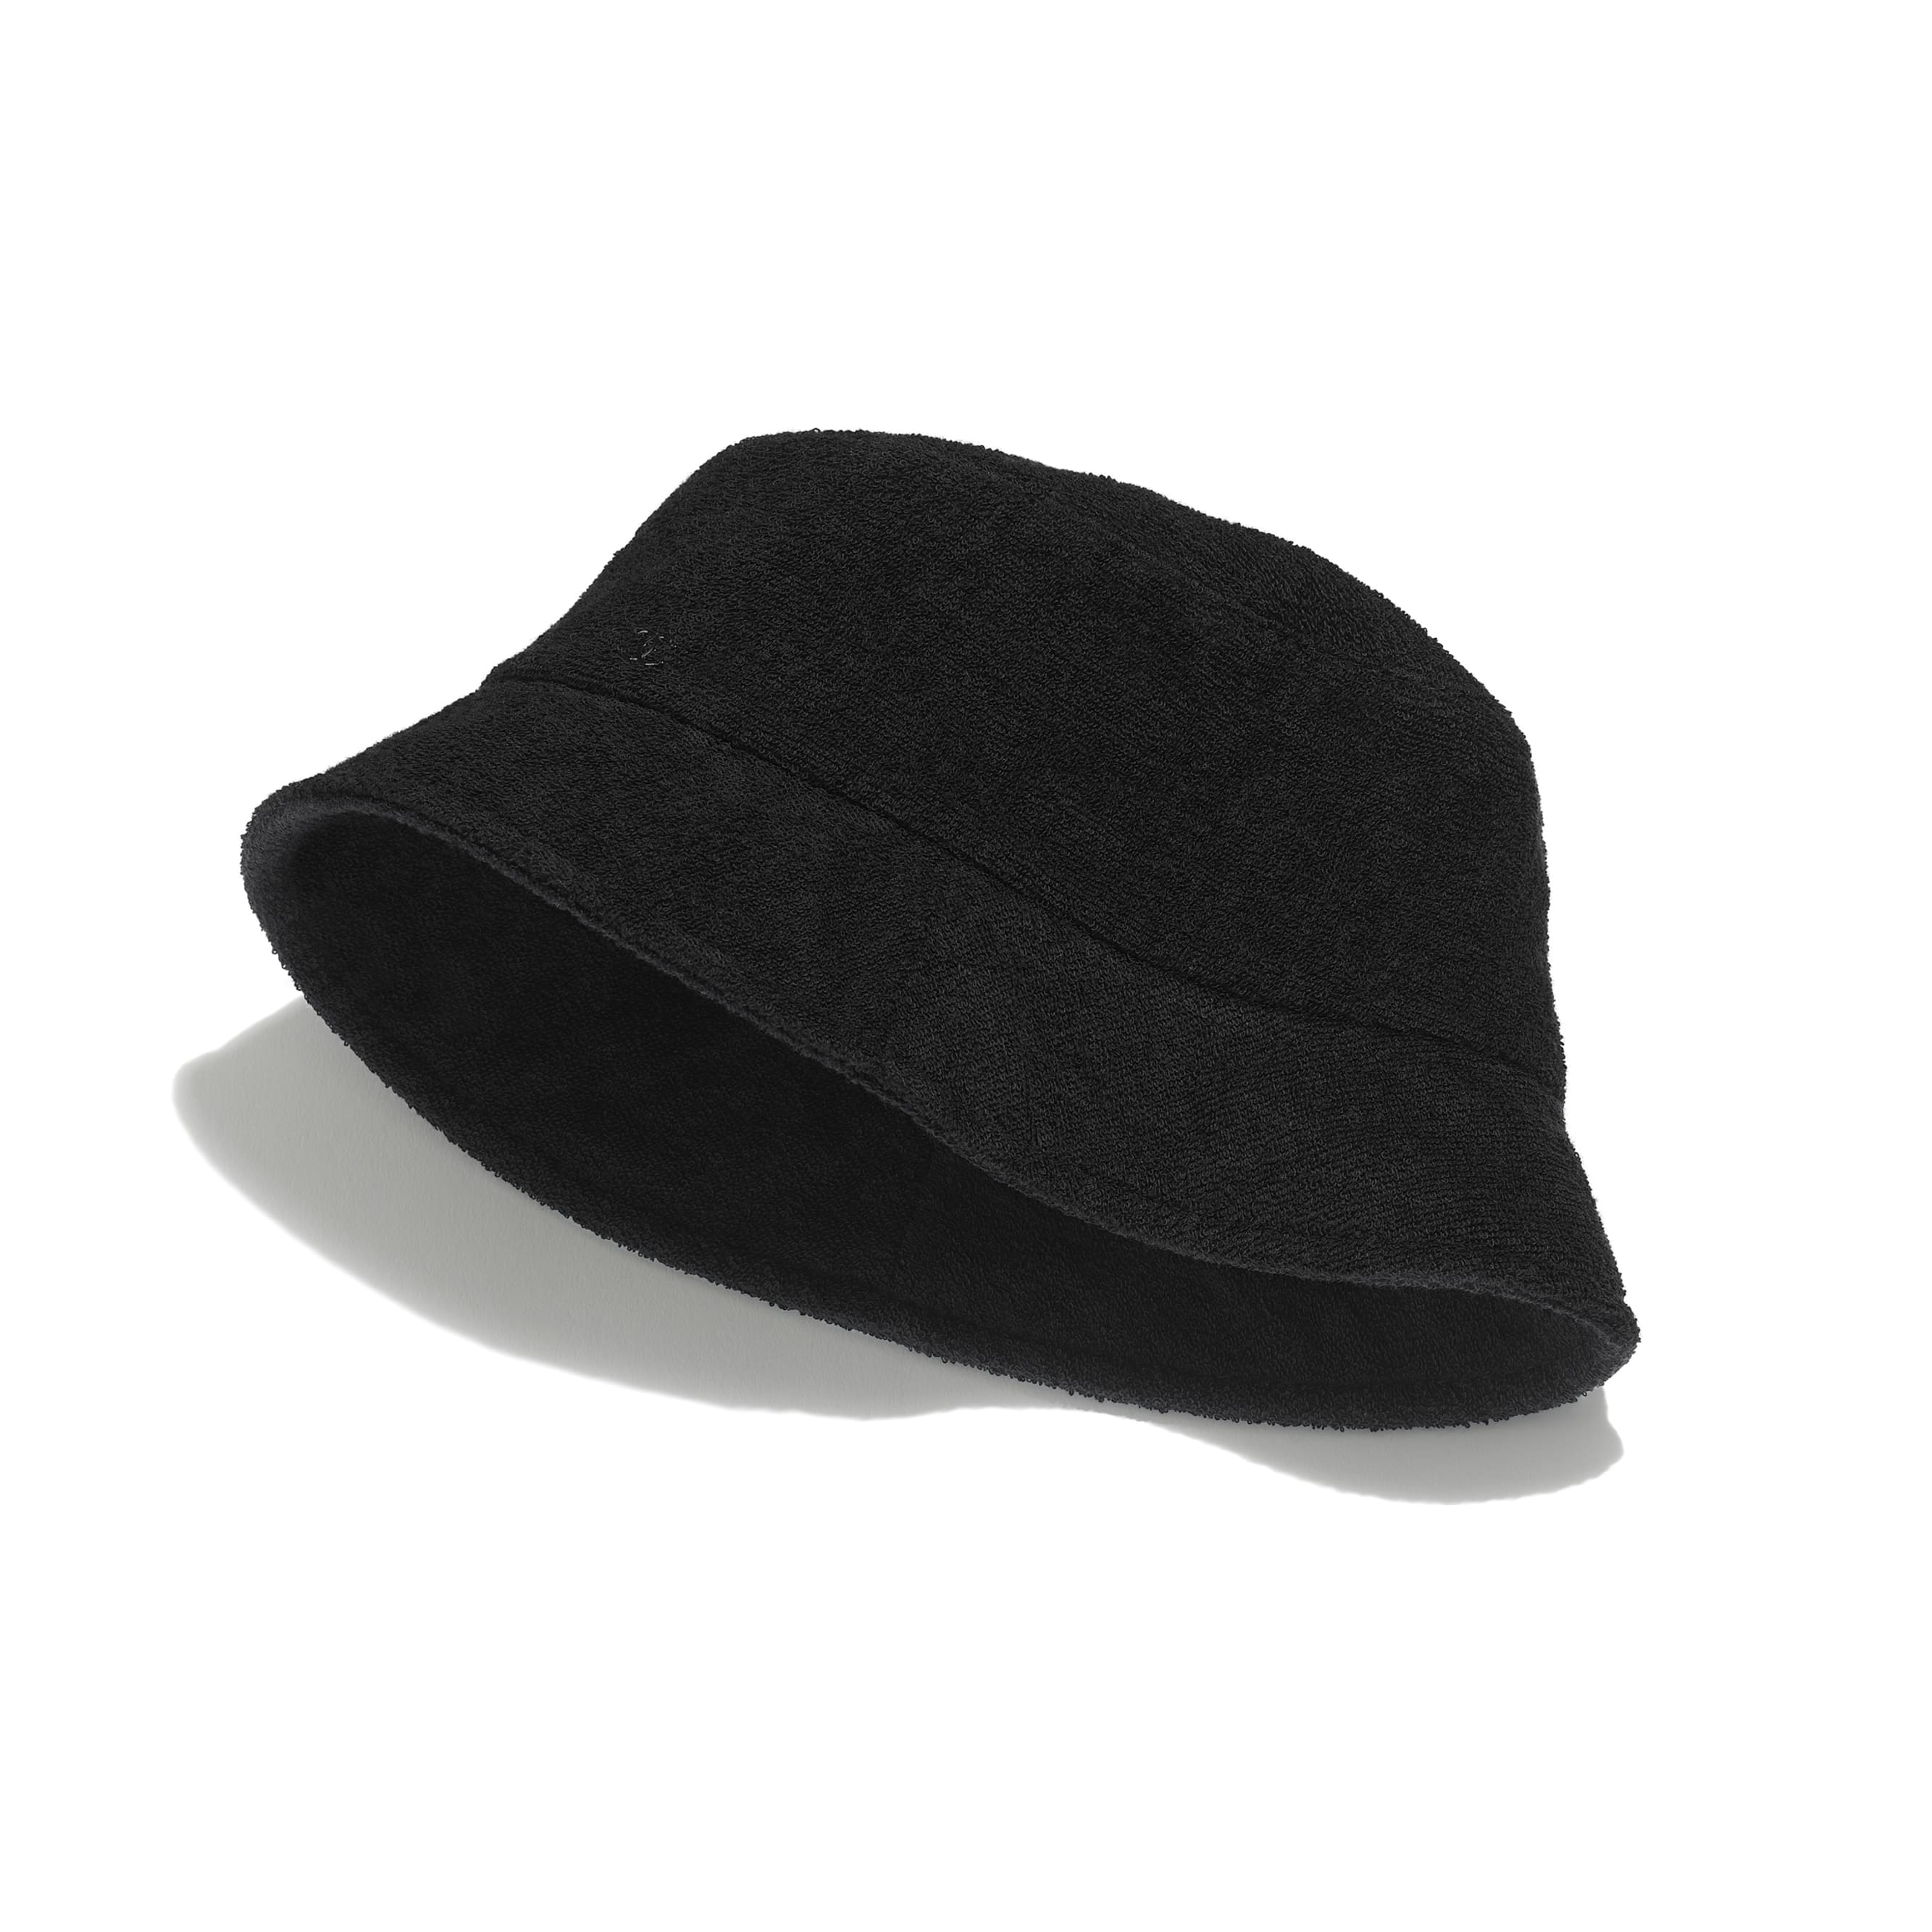 Hat - Black - Cotton Terrycloth - CHANEL - Default view - see standard sized version